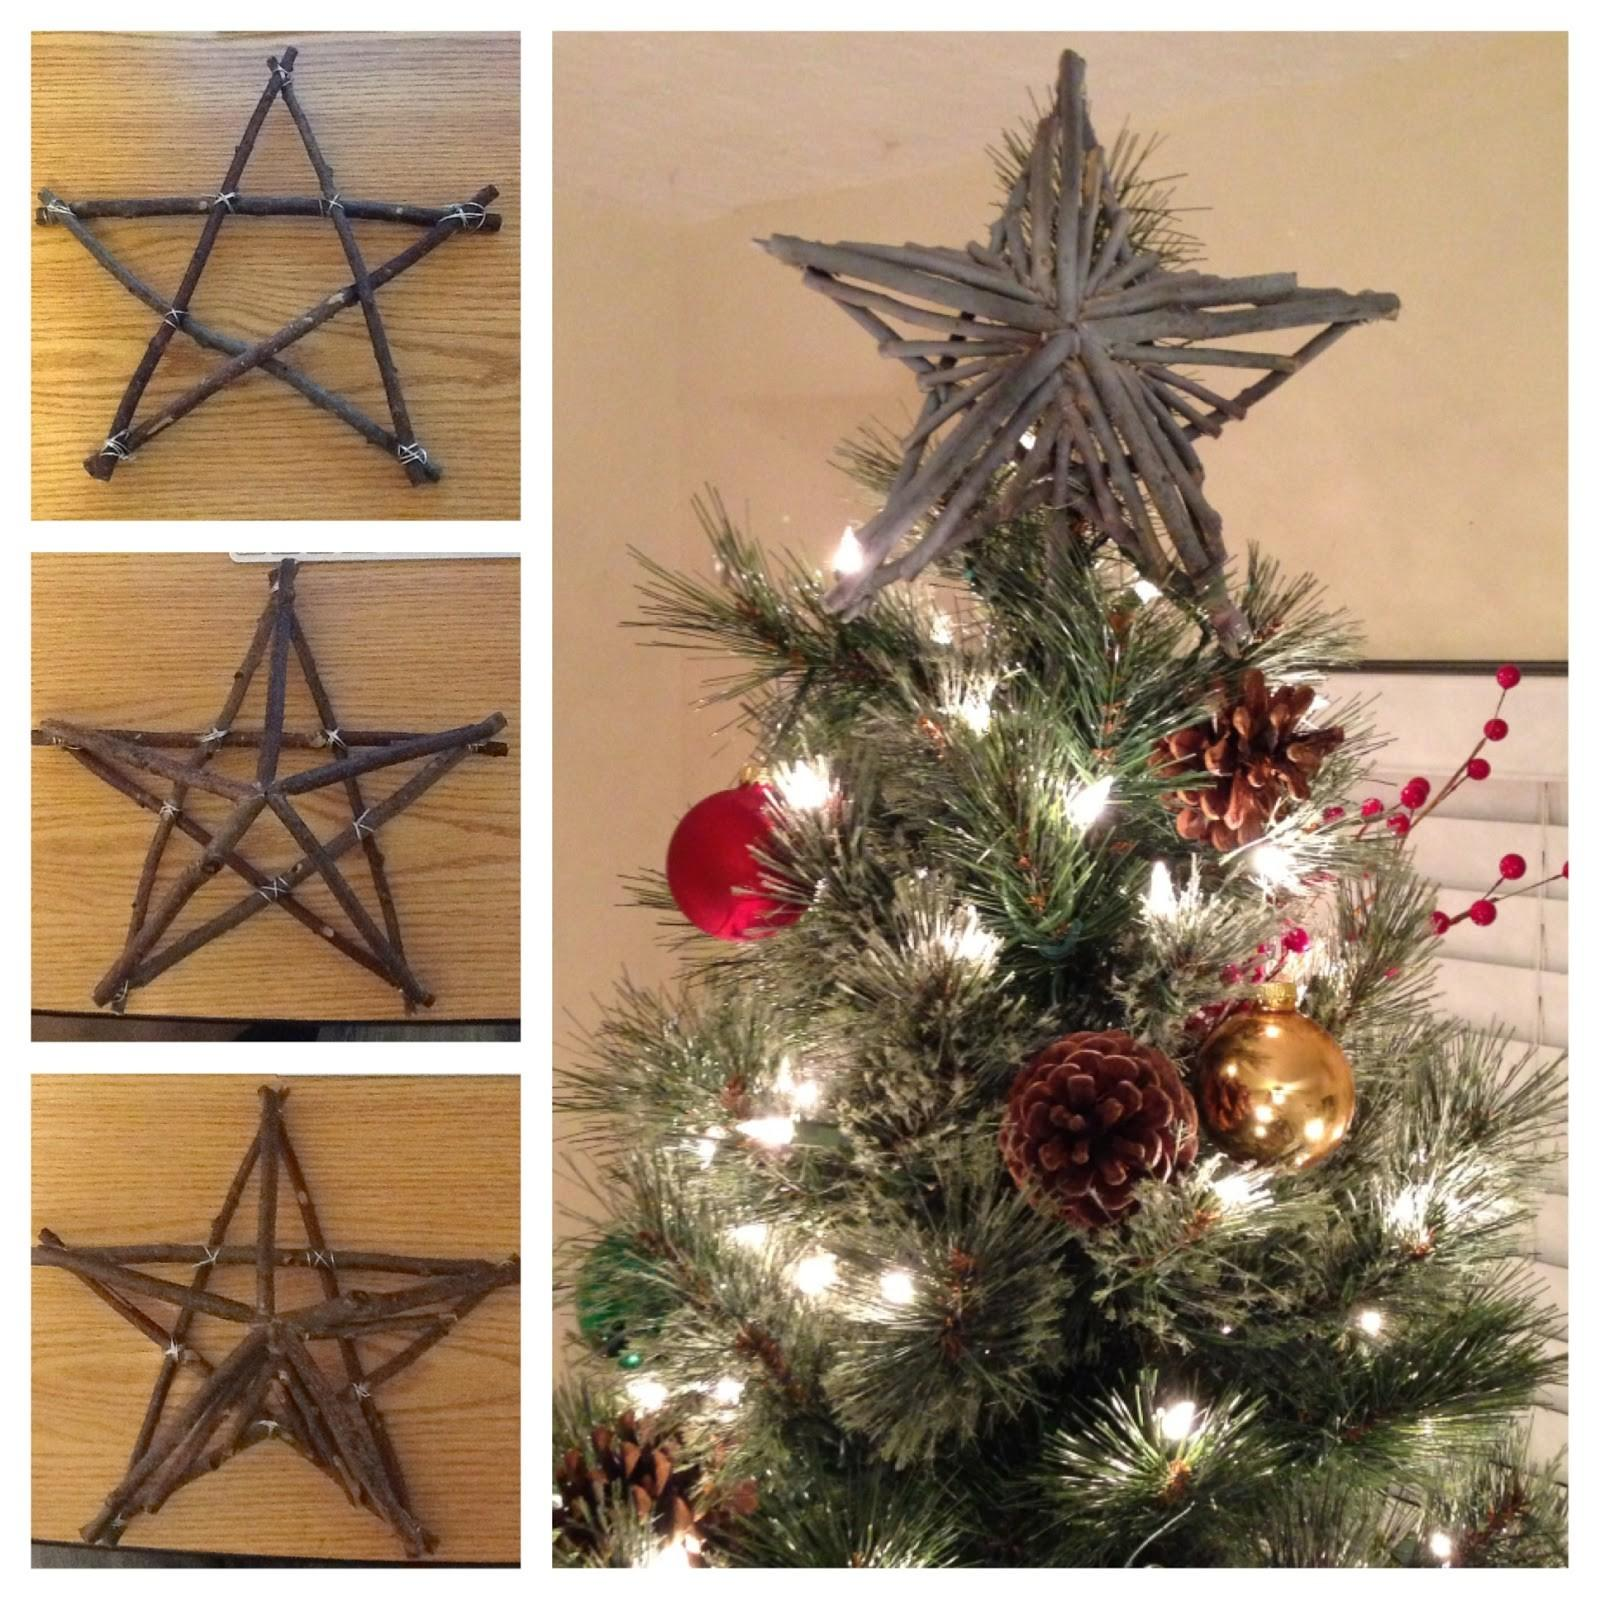 Projects Rustic Star Tree Topper